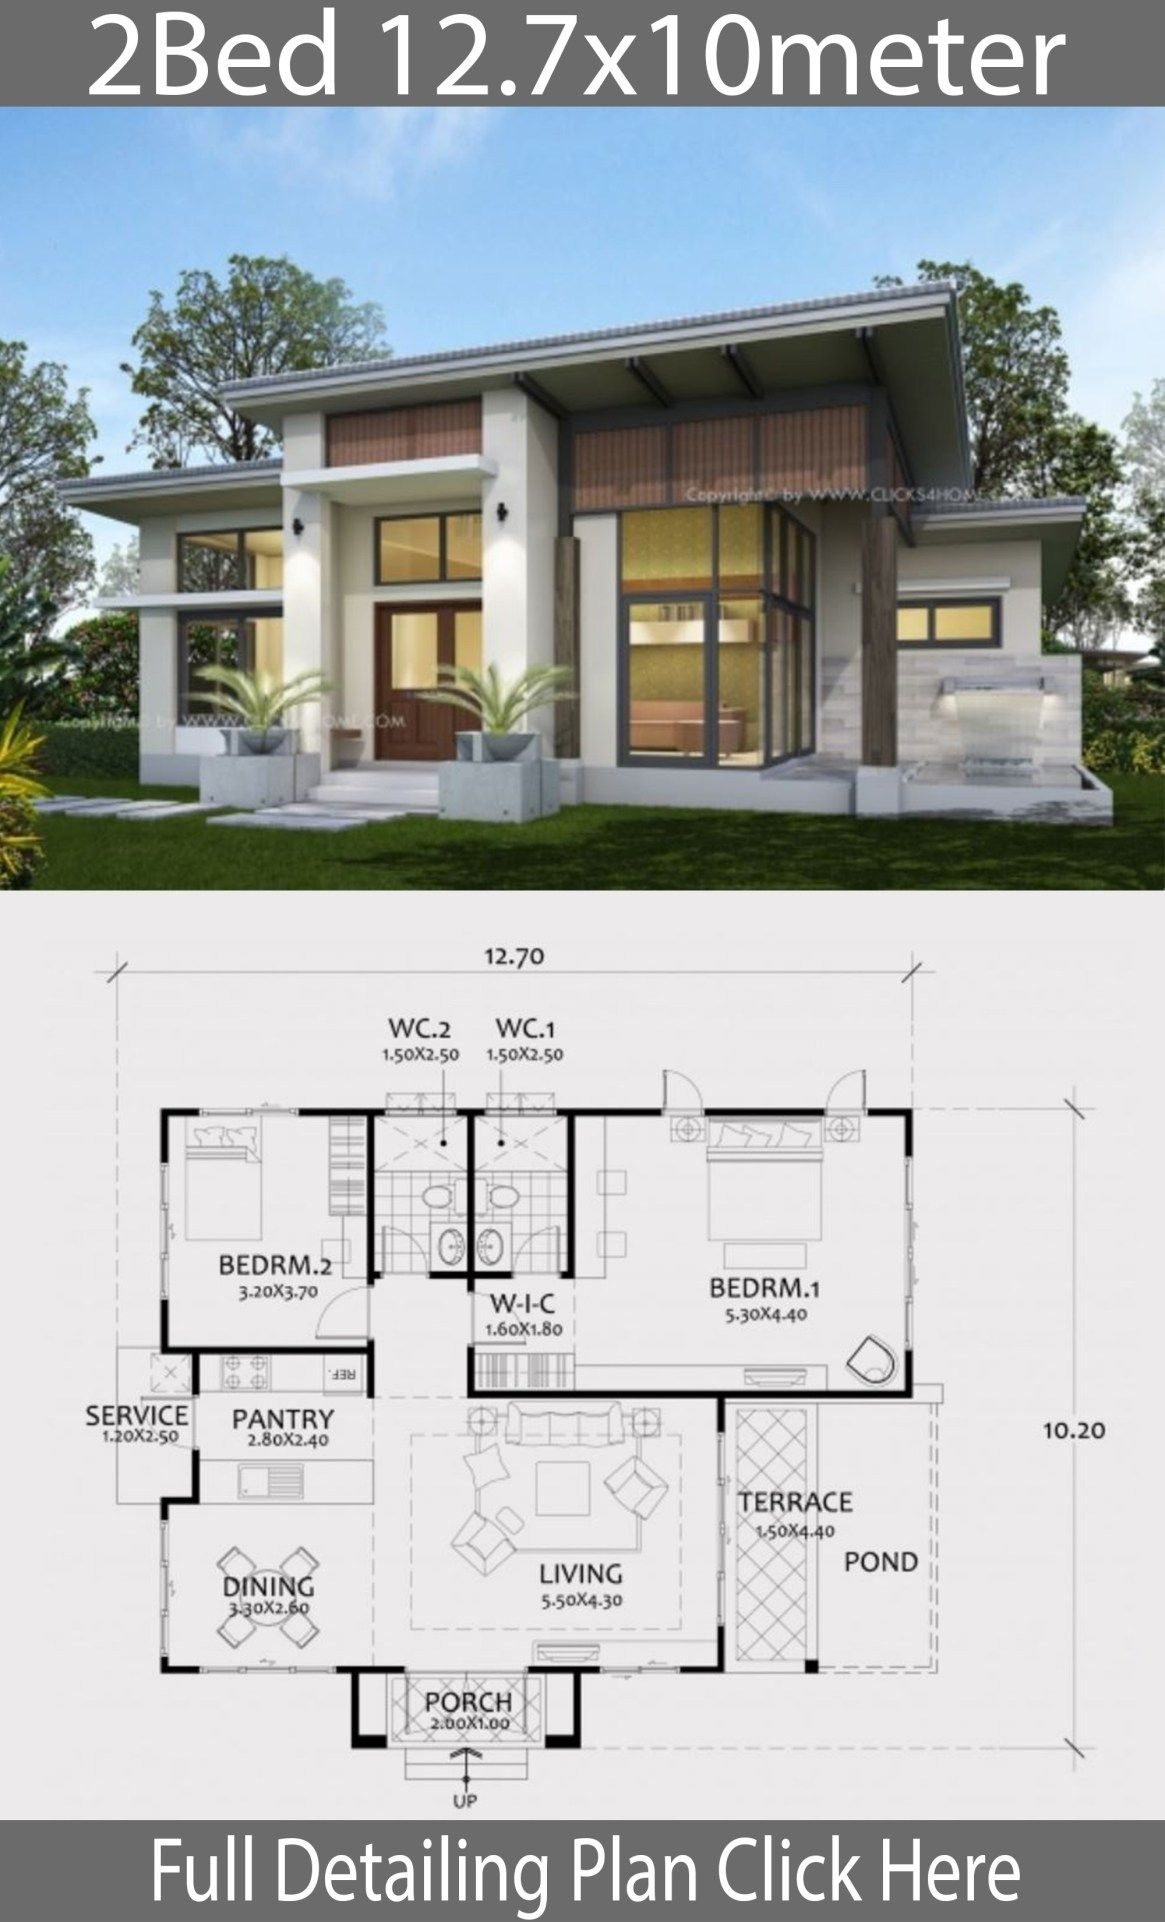 Home Design Plan 12 7x10m With 2 Bedrooms Home Design With Plansearch Architectural House Plans Modern House Plans Contemporary House Plans